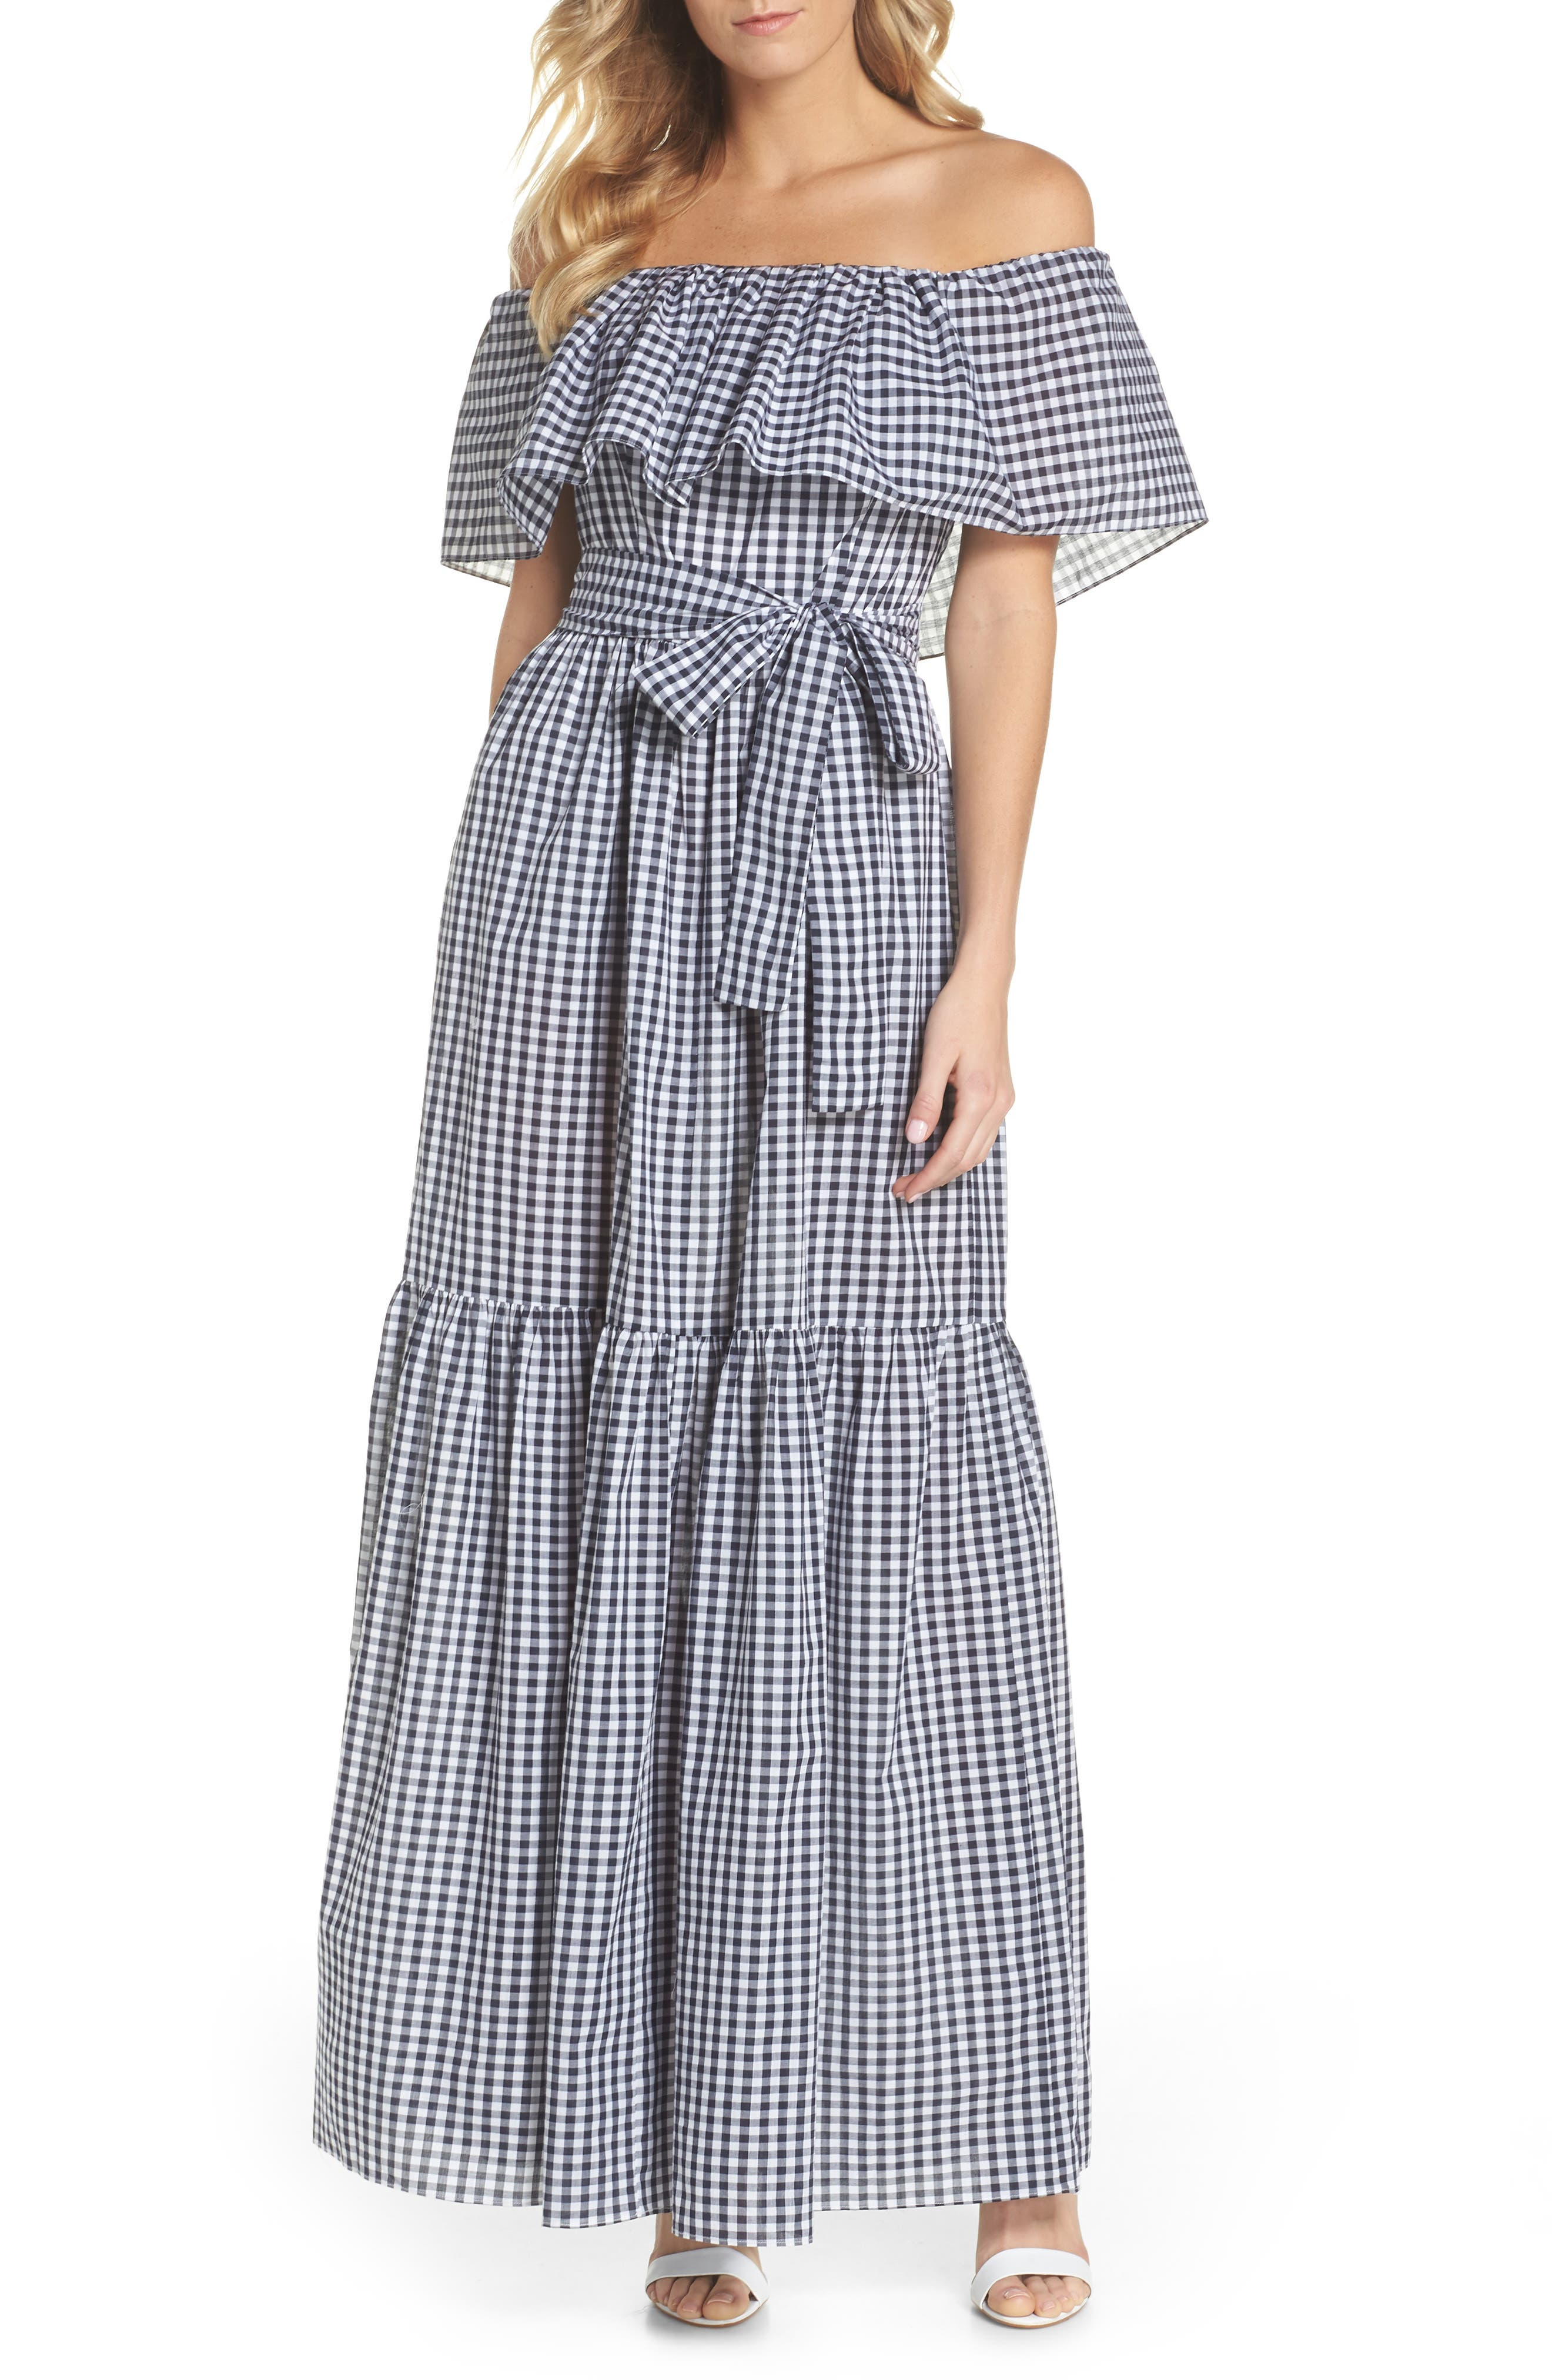 Off the Shoulder Ruffle Gingham Maxi Dress,                         Main,                         color, 410